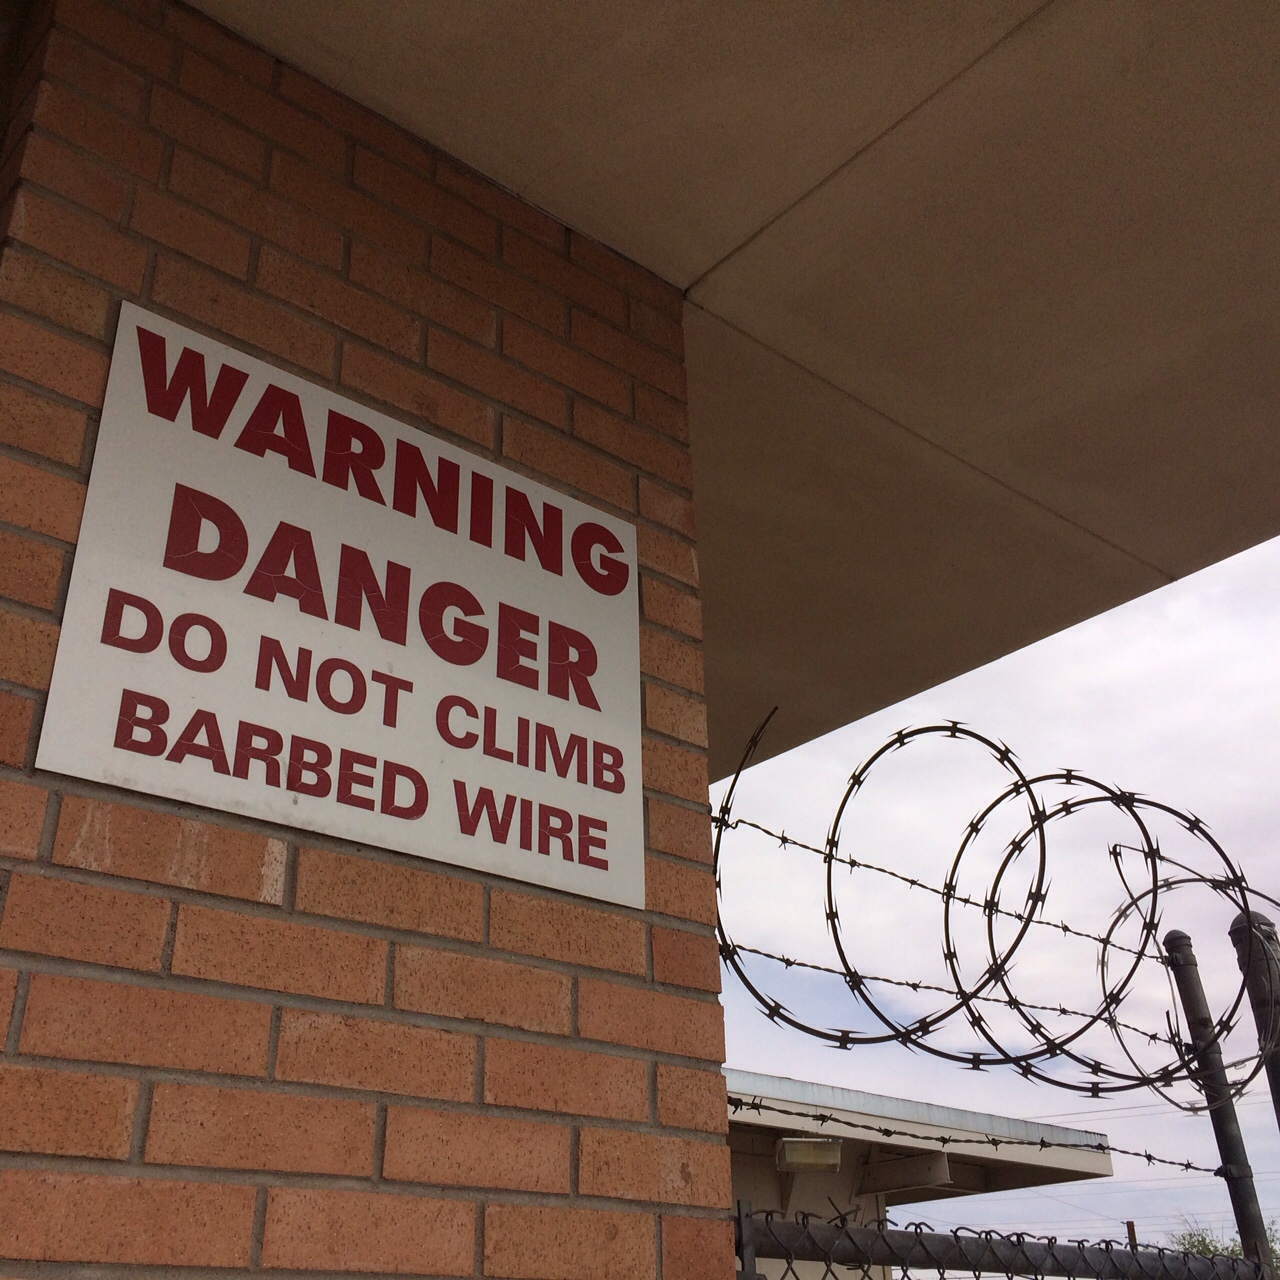 Warning sign for barb wire